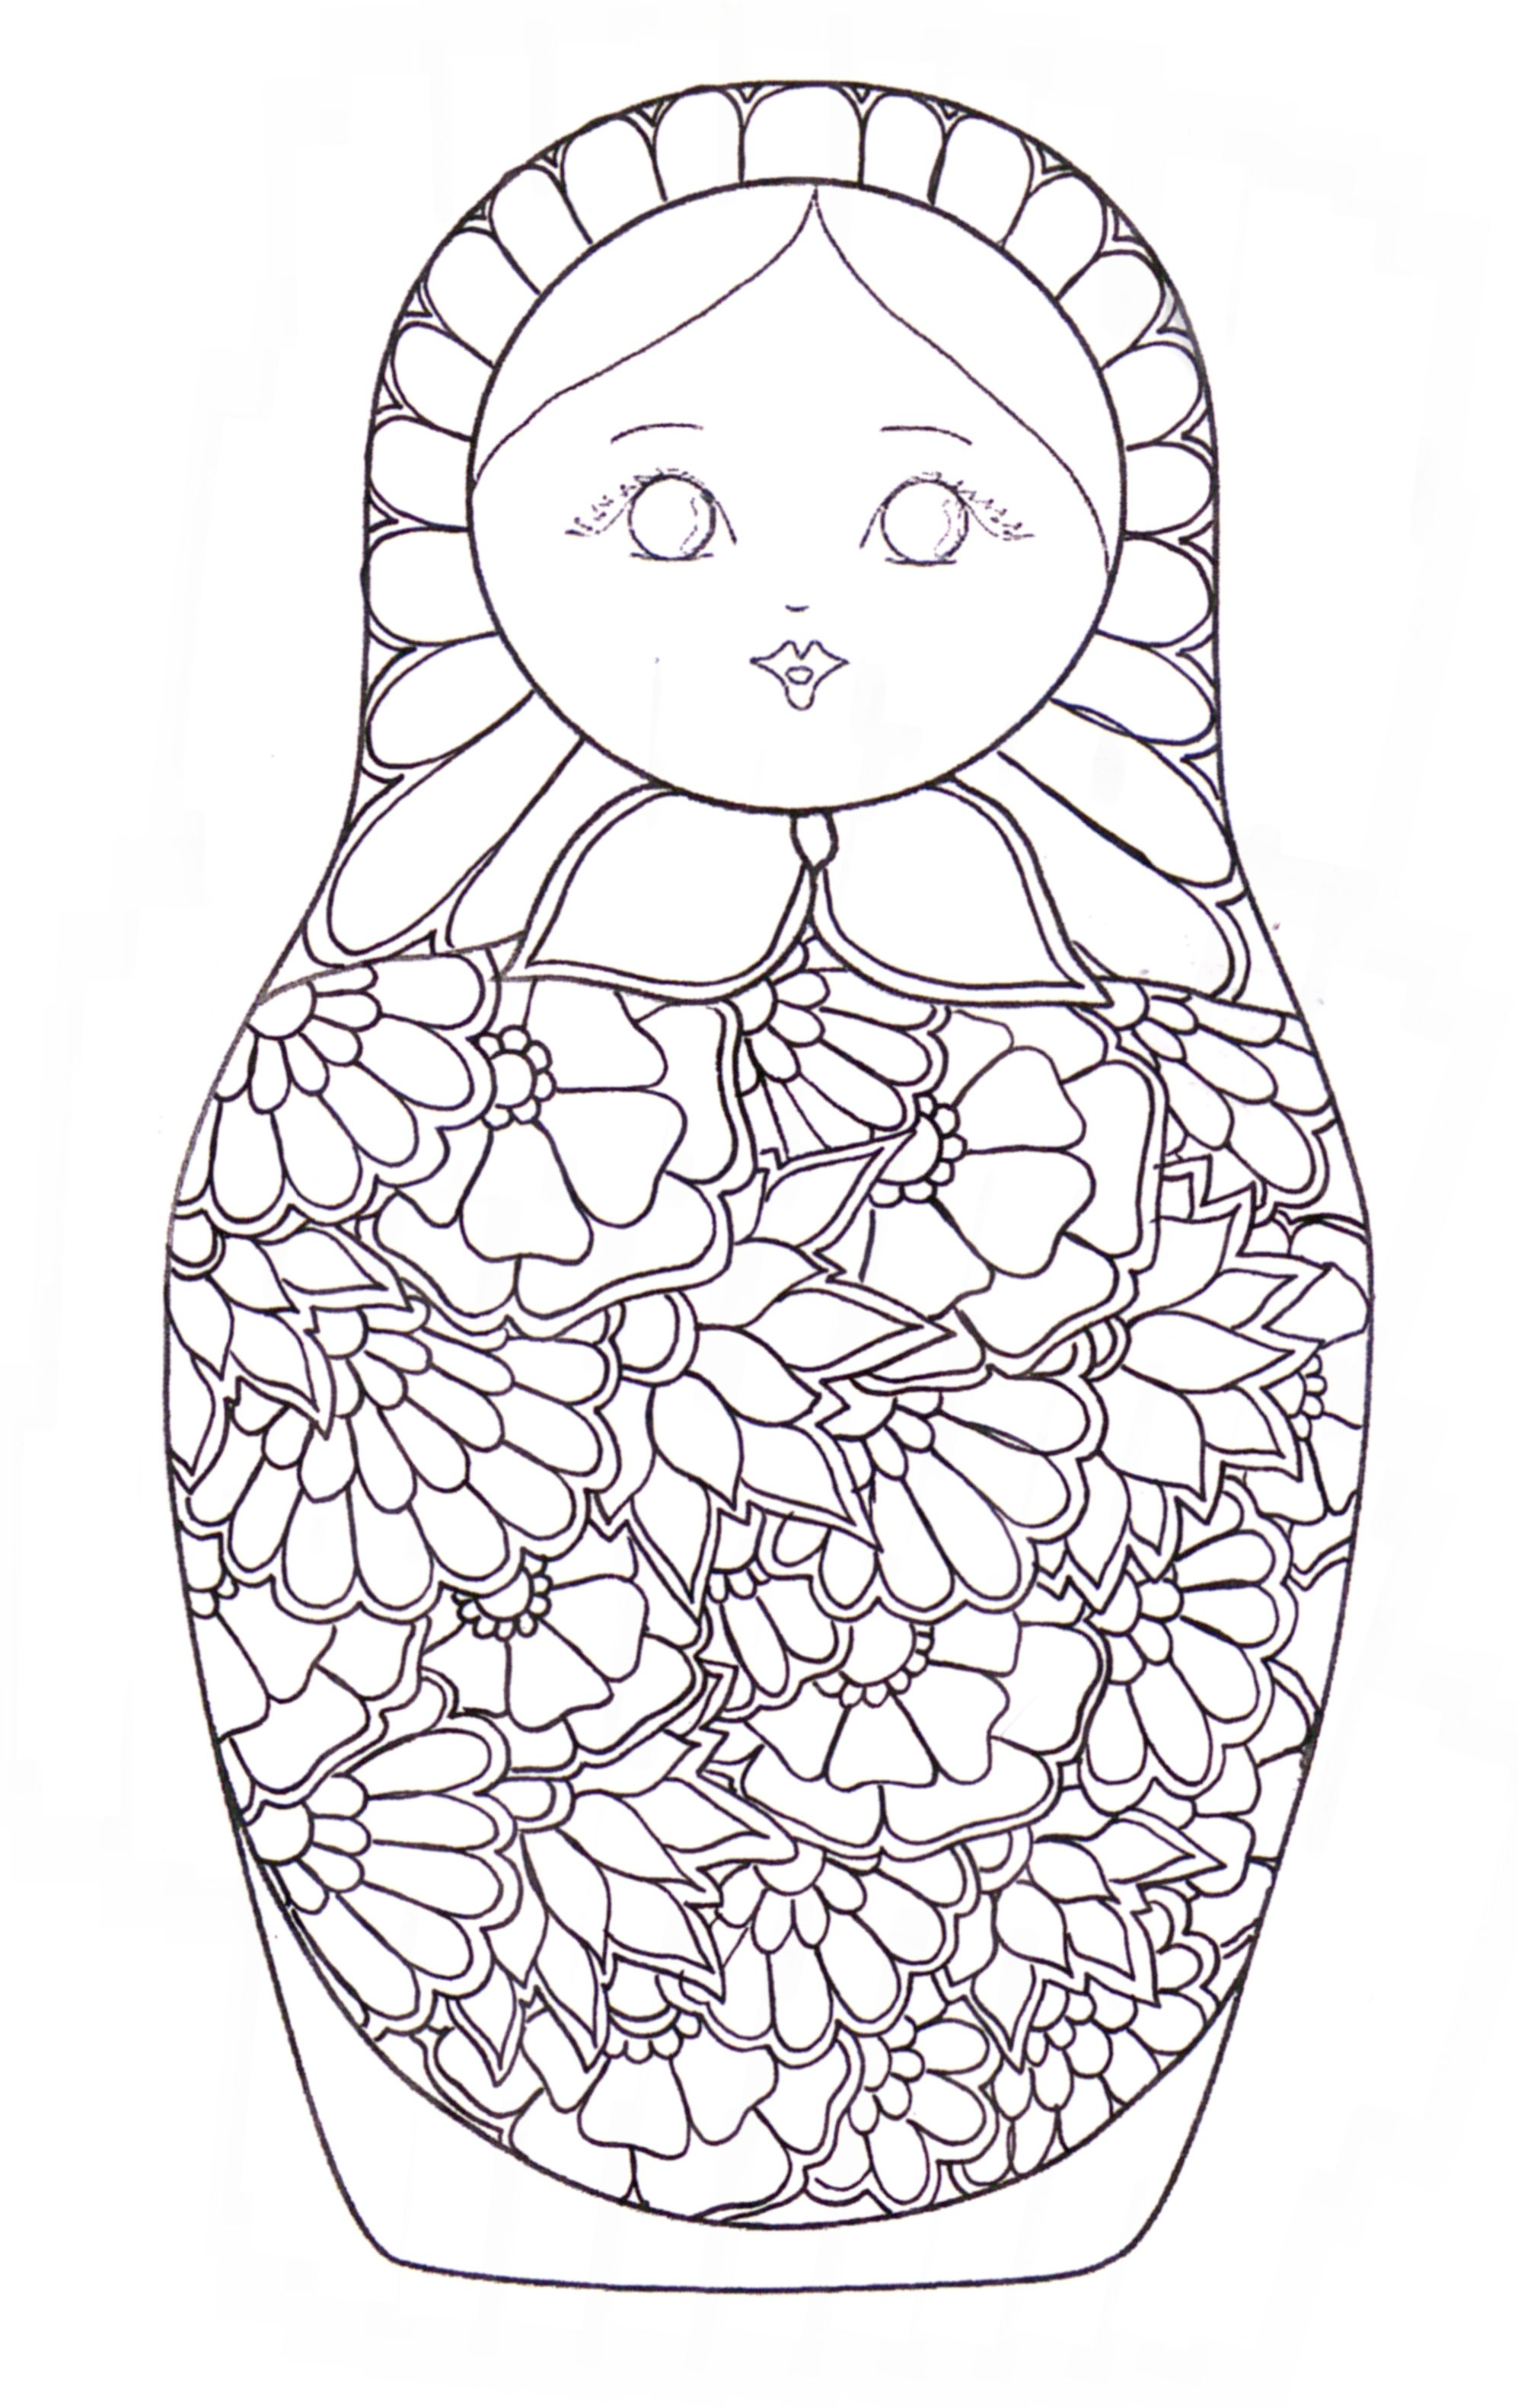 kokeshi dolls coloring pages - 1000 images about icolor kokeshi dolls on